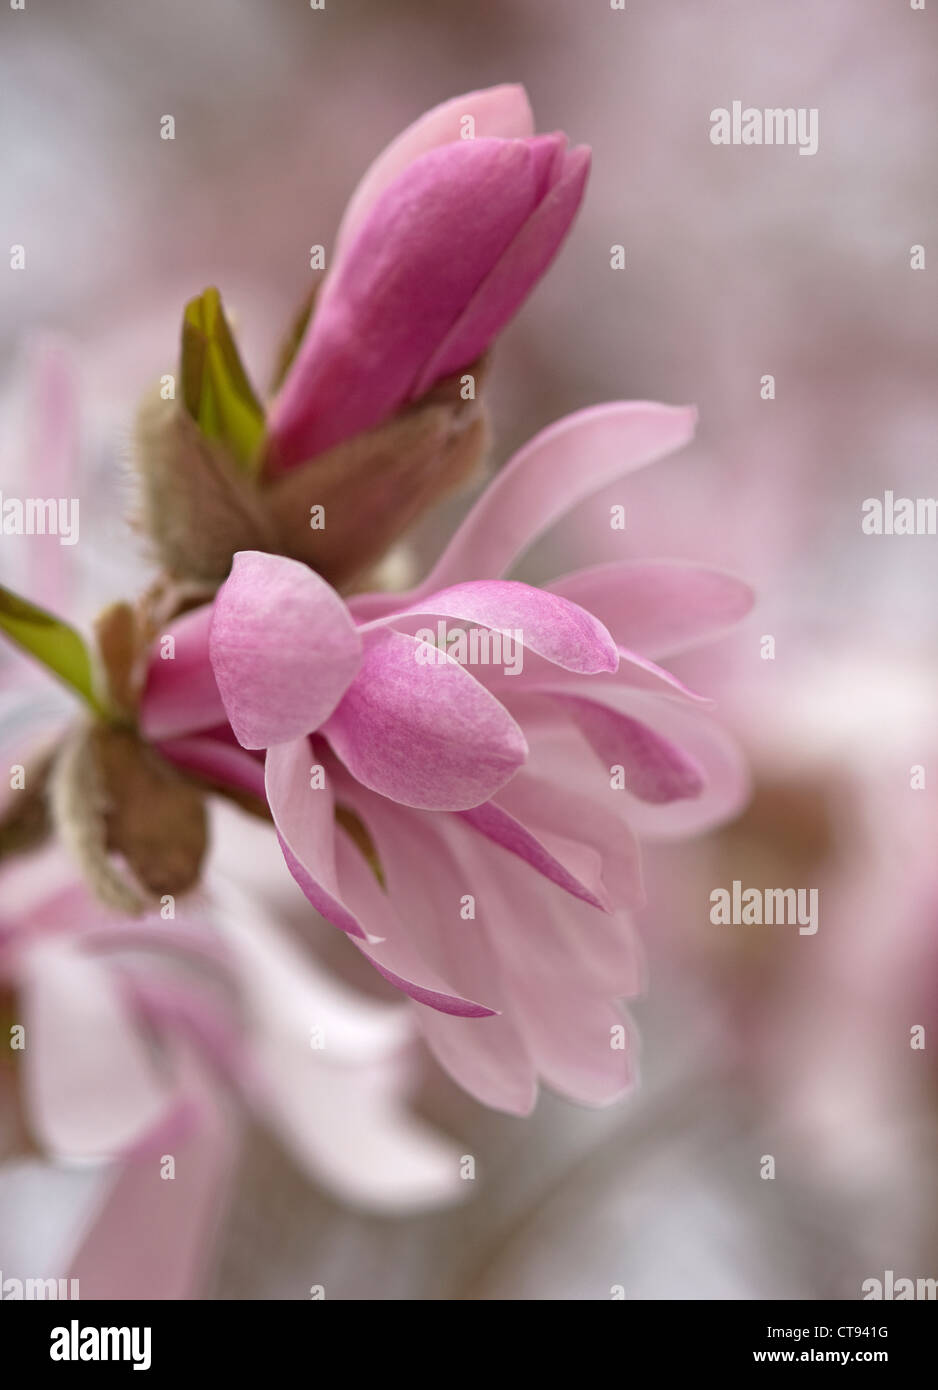 Magnolia x loebneri 'Leonard Messel', Pink flower and bud opening on a tree. Stock Photo